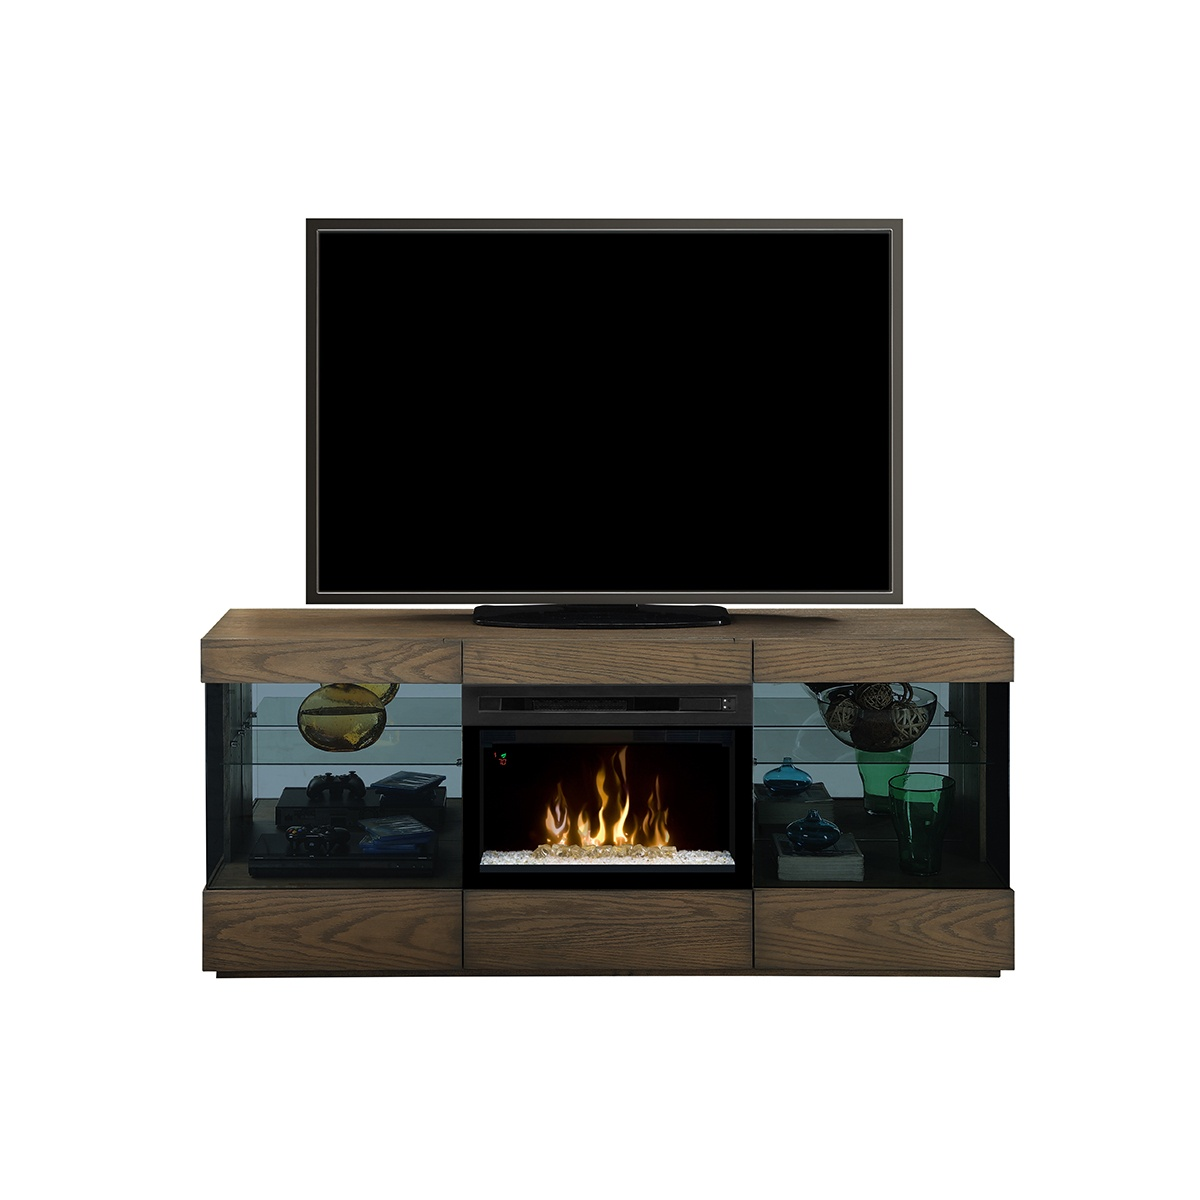 dimplex contemporary electric fireplace with glass embers inserted into a media console